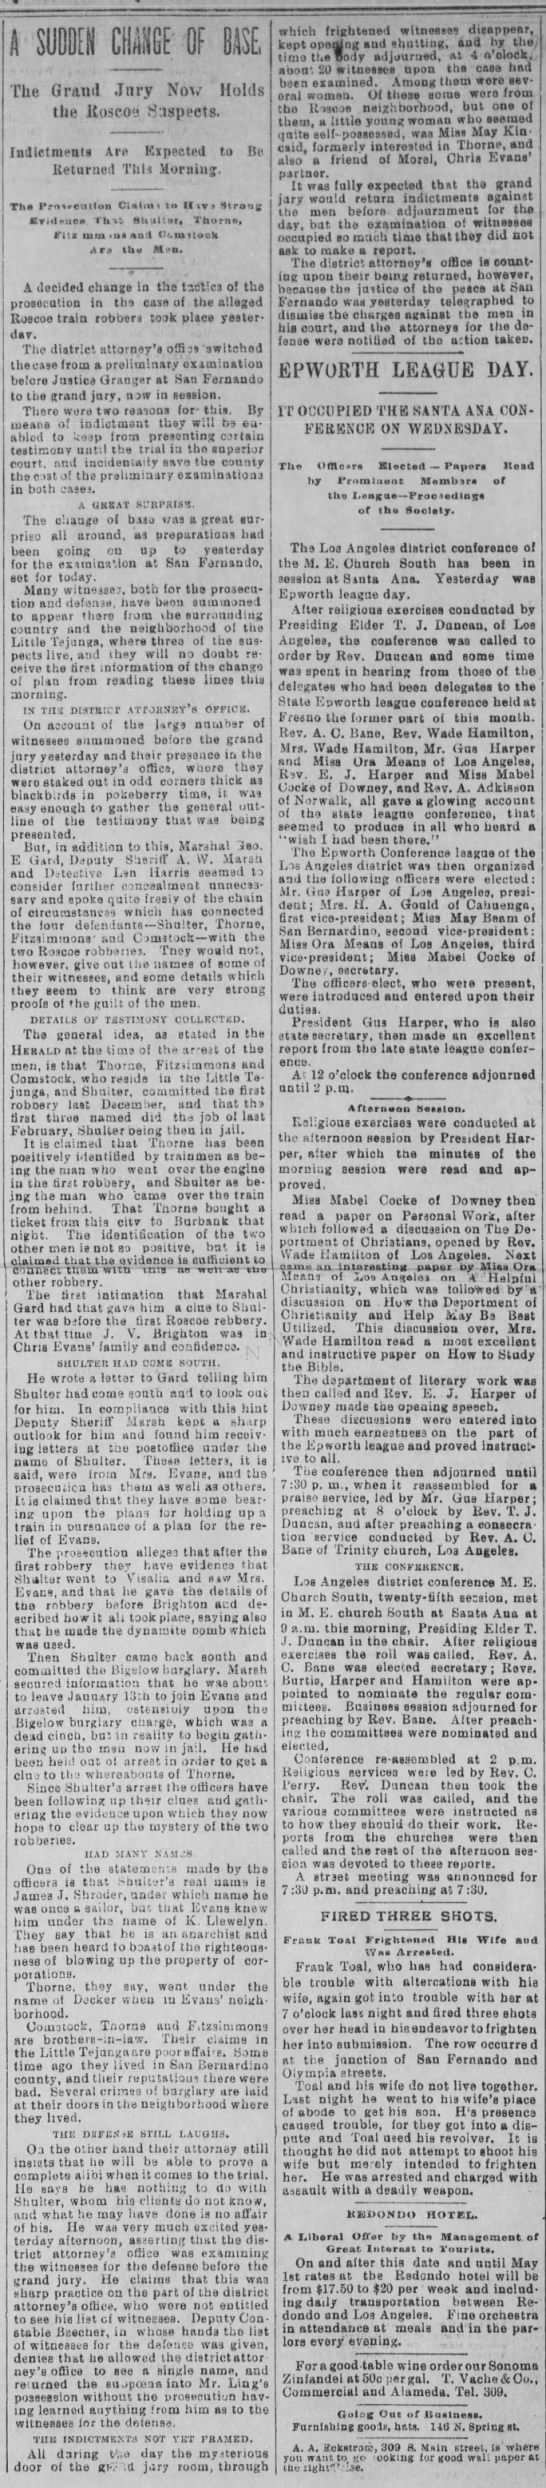 """Grand Jury Now Holds the Roscoe Suspects"" - Los Angeles Times 20 Apr 1894 - A SUDDEN CHANGE OF BASE. The Granil Jnry Nov..."